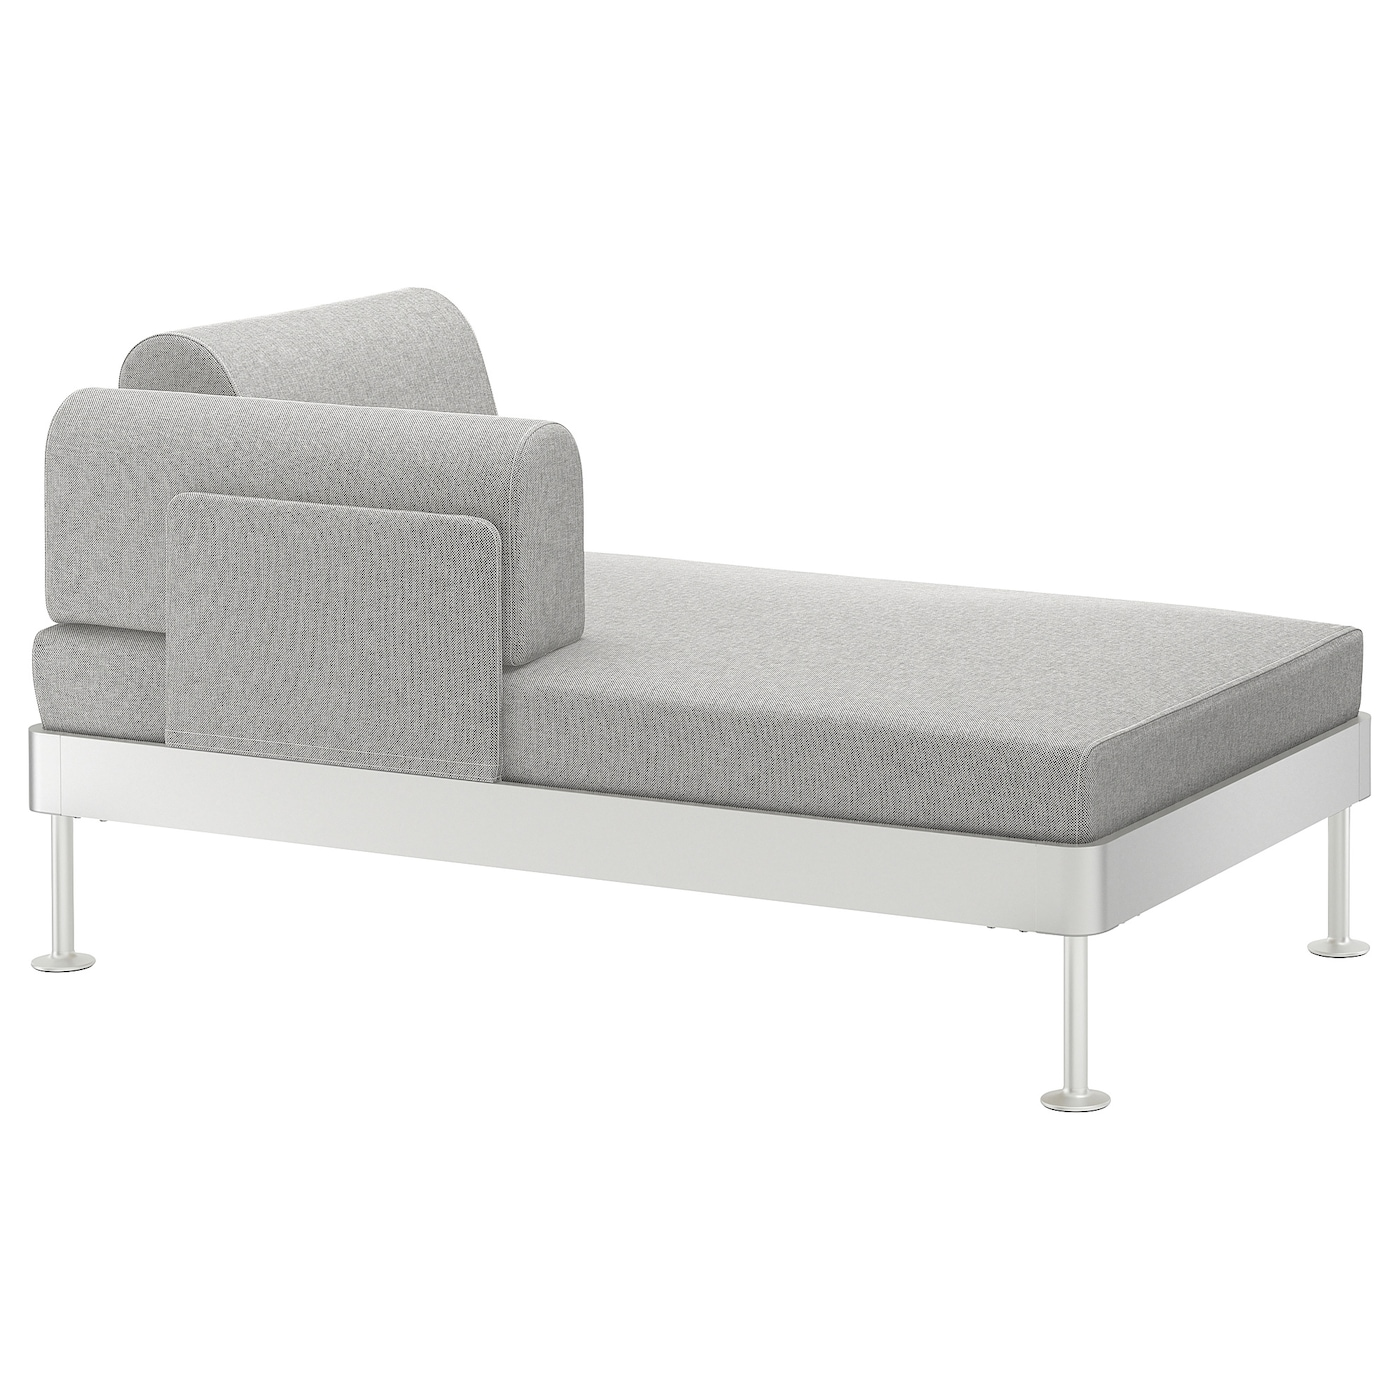 Ikea chaise sofa rp 3 seat sofa with chaise longue for Chaise longue ikea